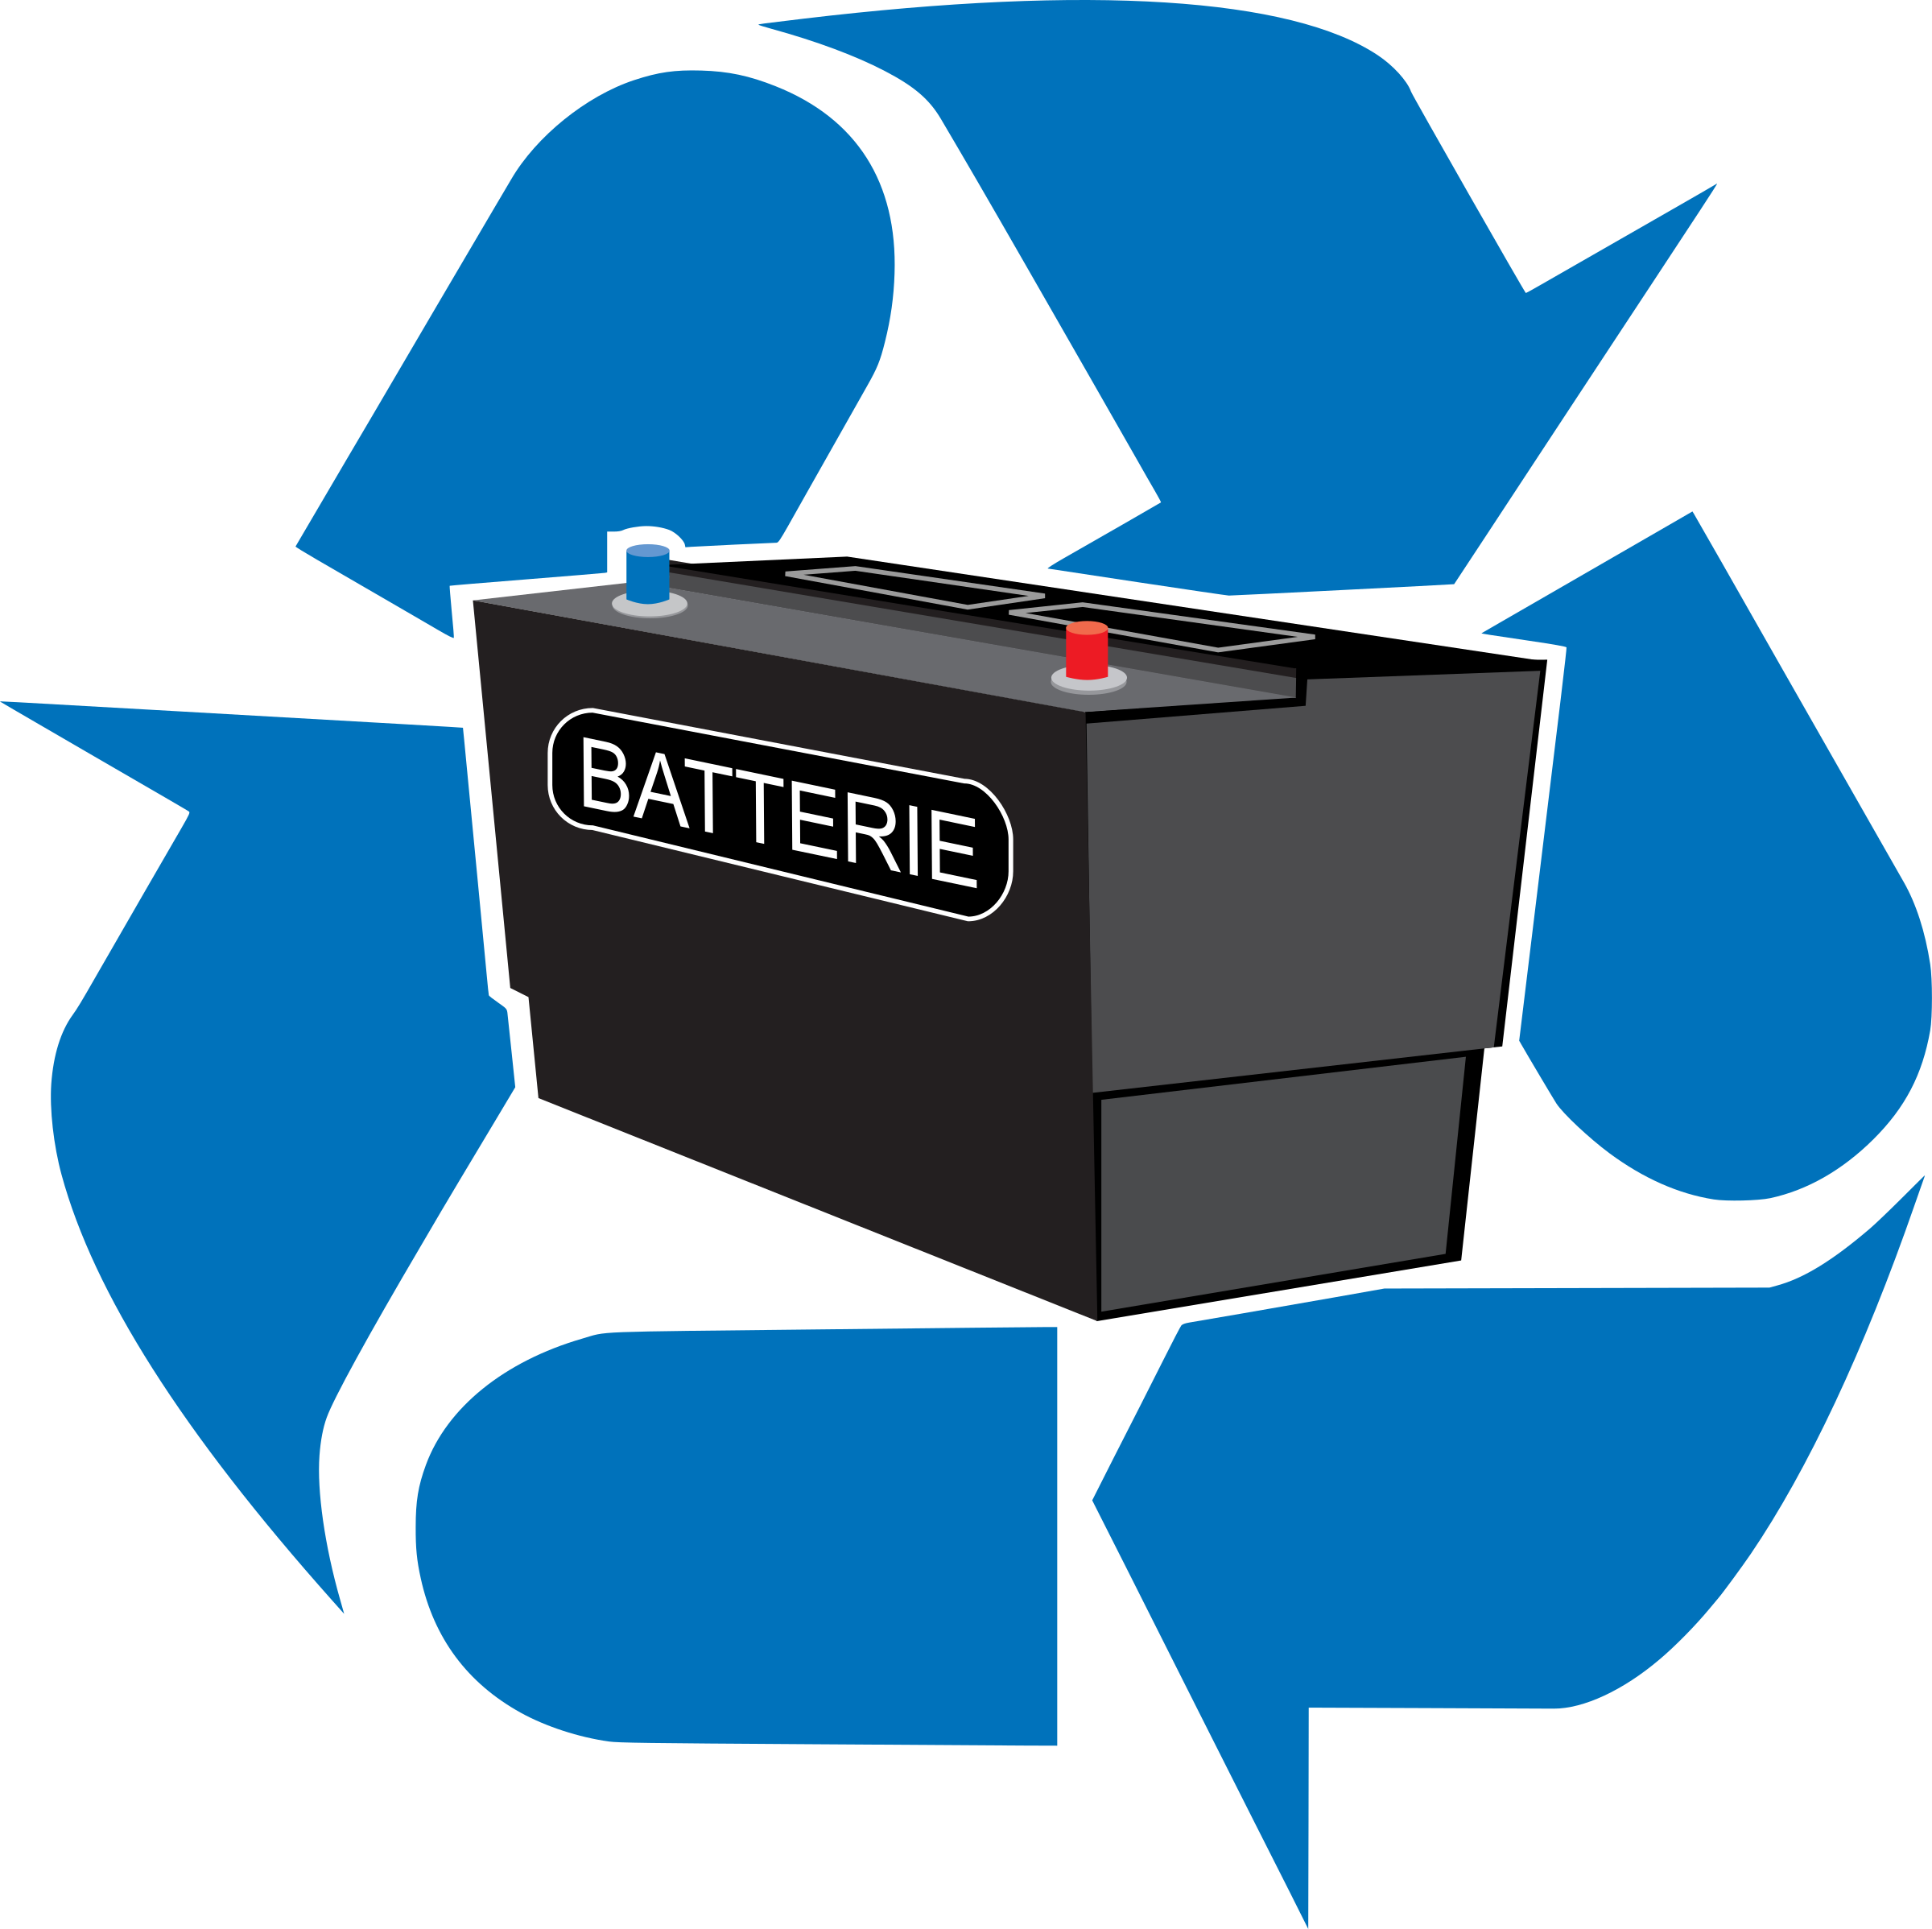 recyclage batterie by laurent